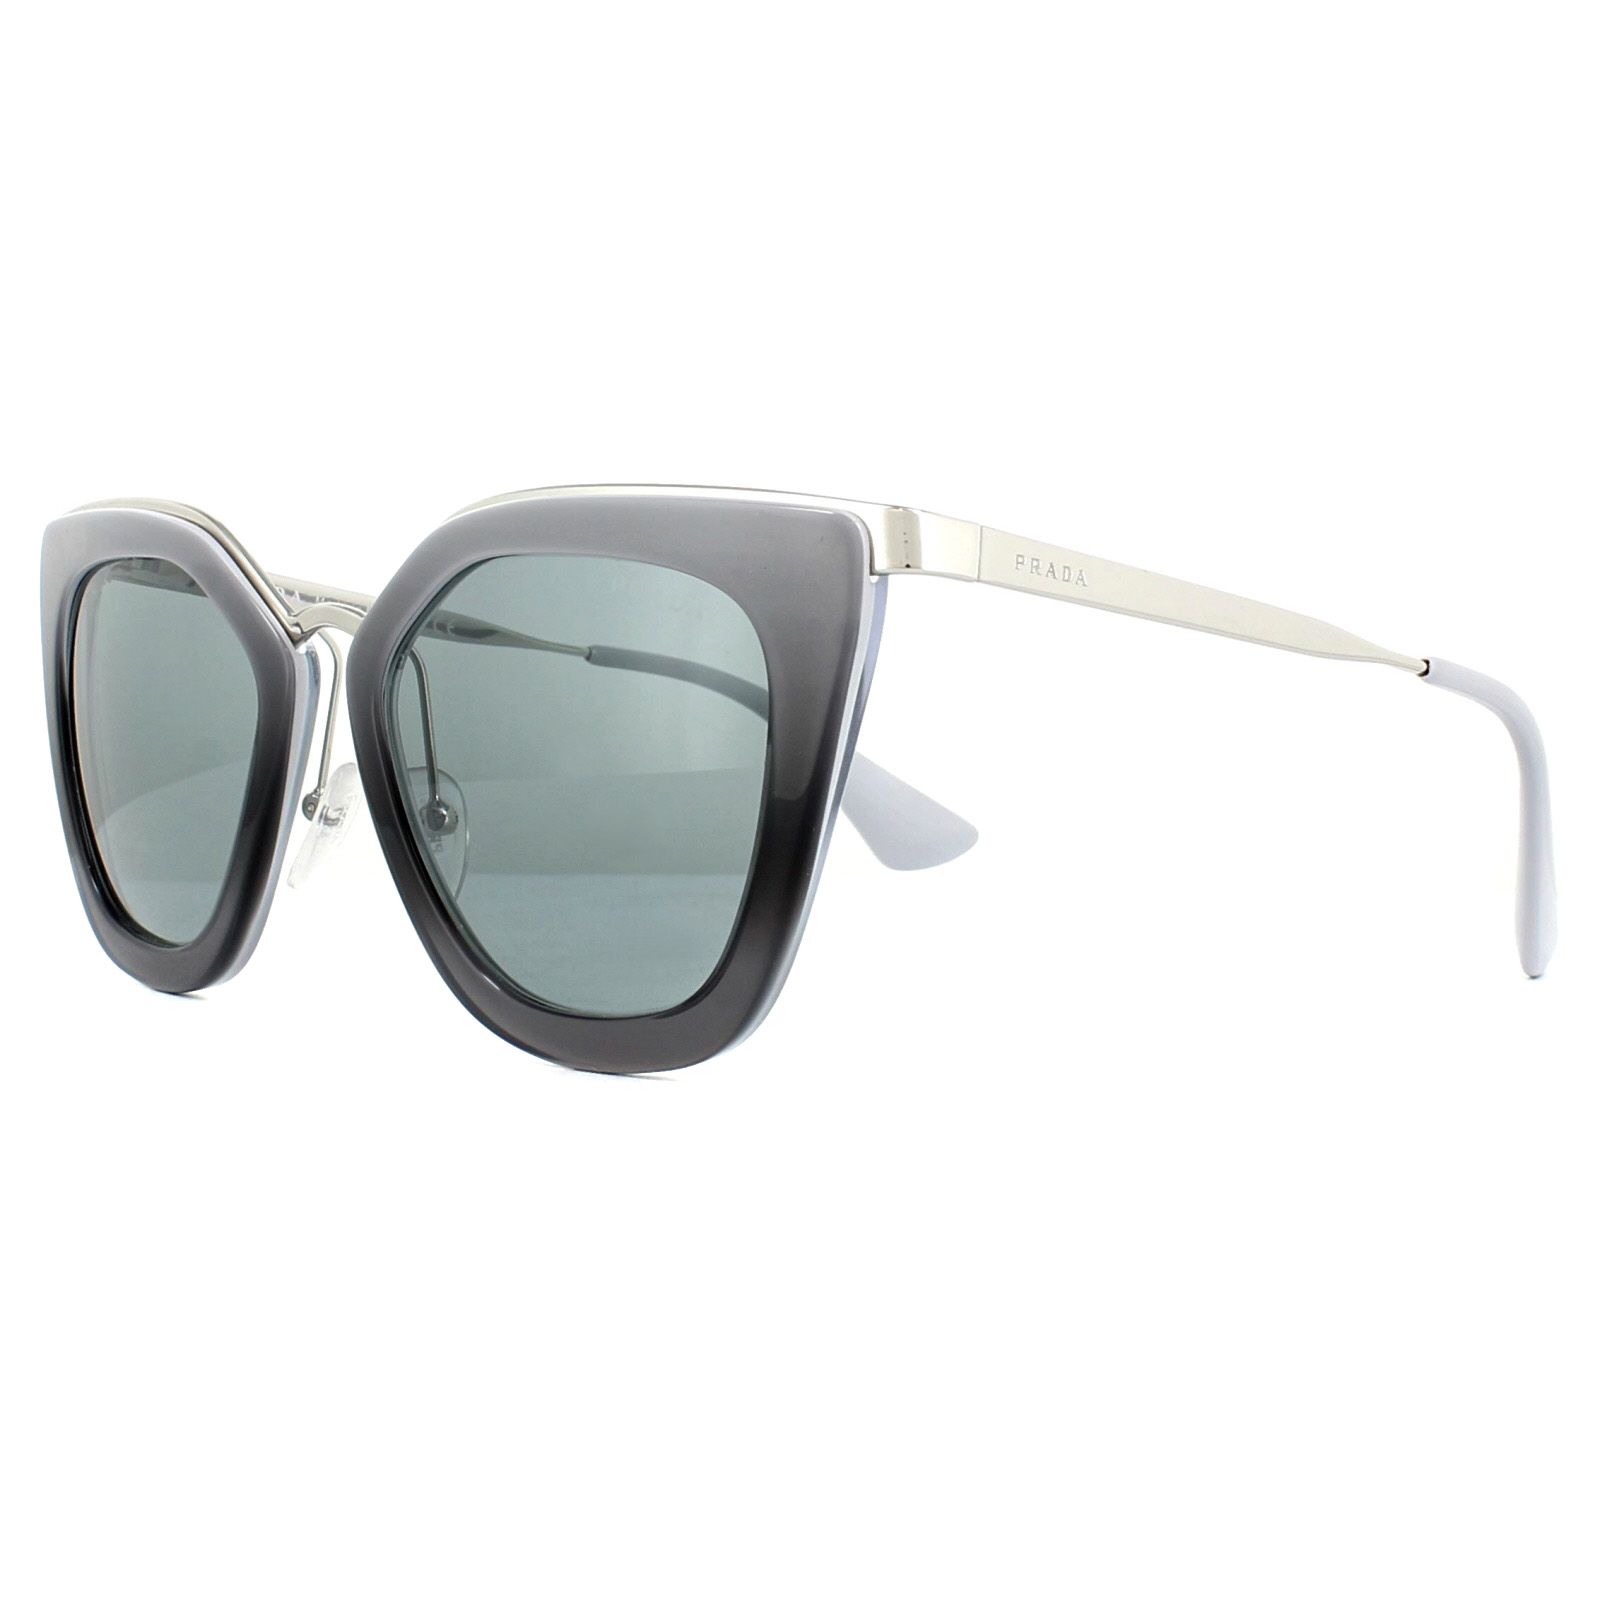 491f173a533 Prada Sunglasses Cinema Evolution 53SS UFV3C2 Grey Gradient Dark ...